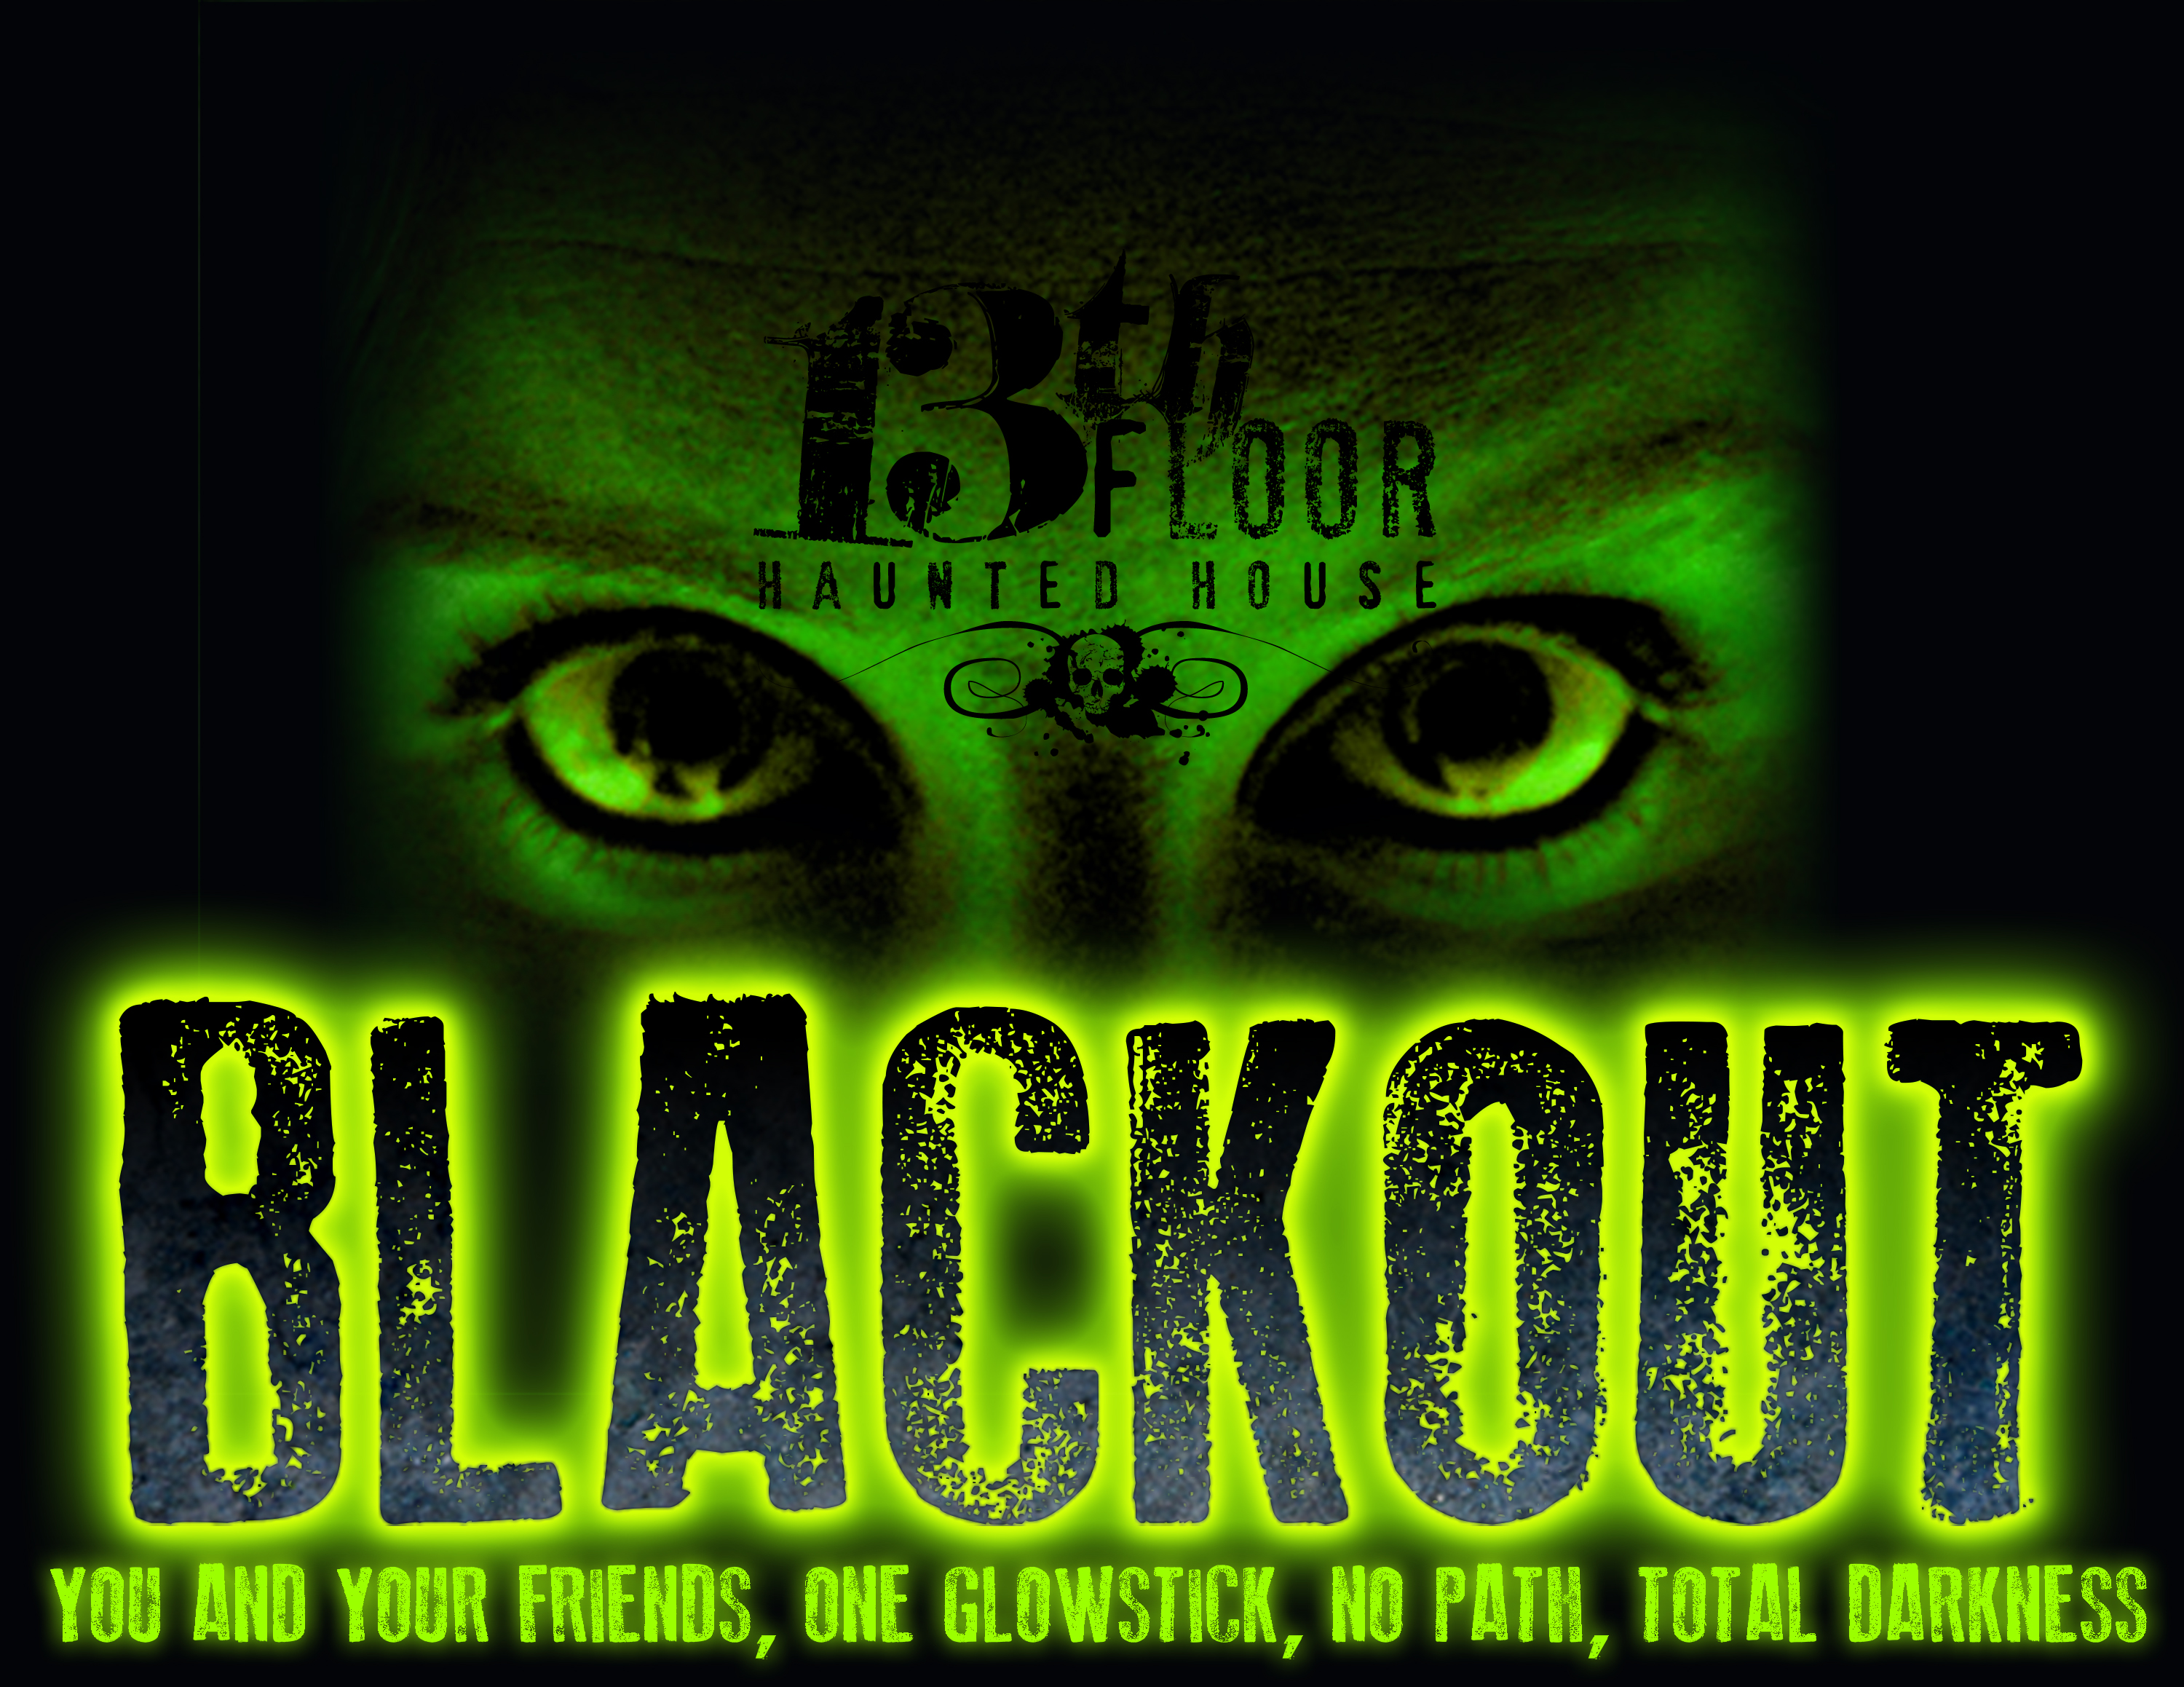 Blackout sat nov 8th tickets 11 08 14 for 13th floor haunted house tickets